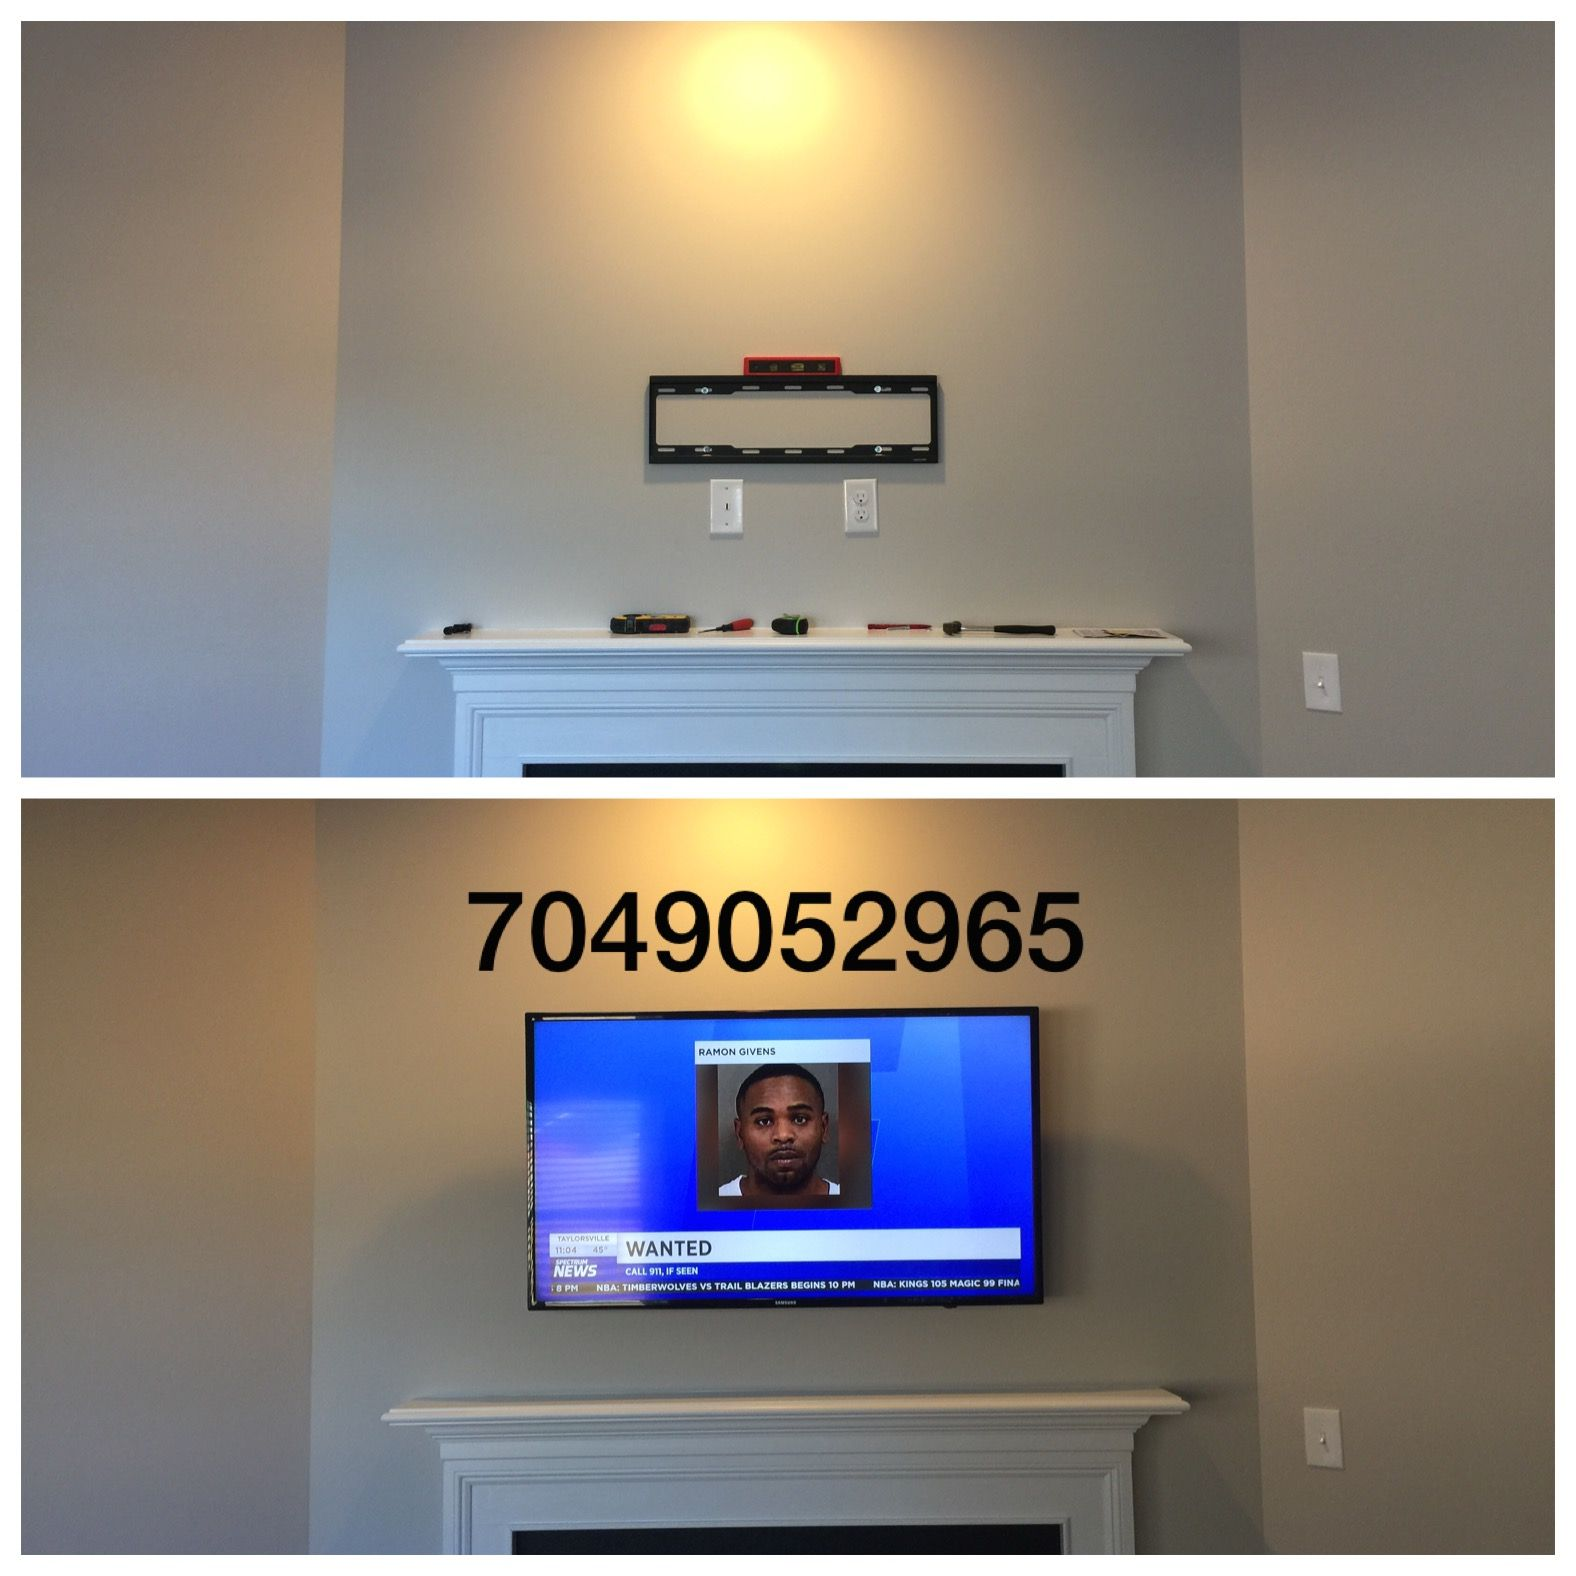 full service home theater and home wiring services we are expanding rh pinterest com Cool Home Theater Rooms Home Theater Wiring Kit